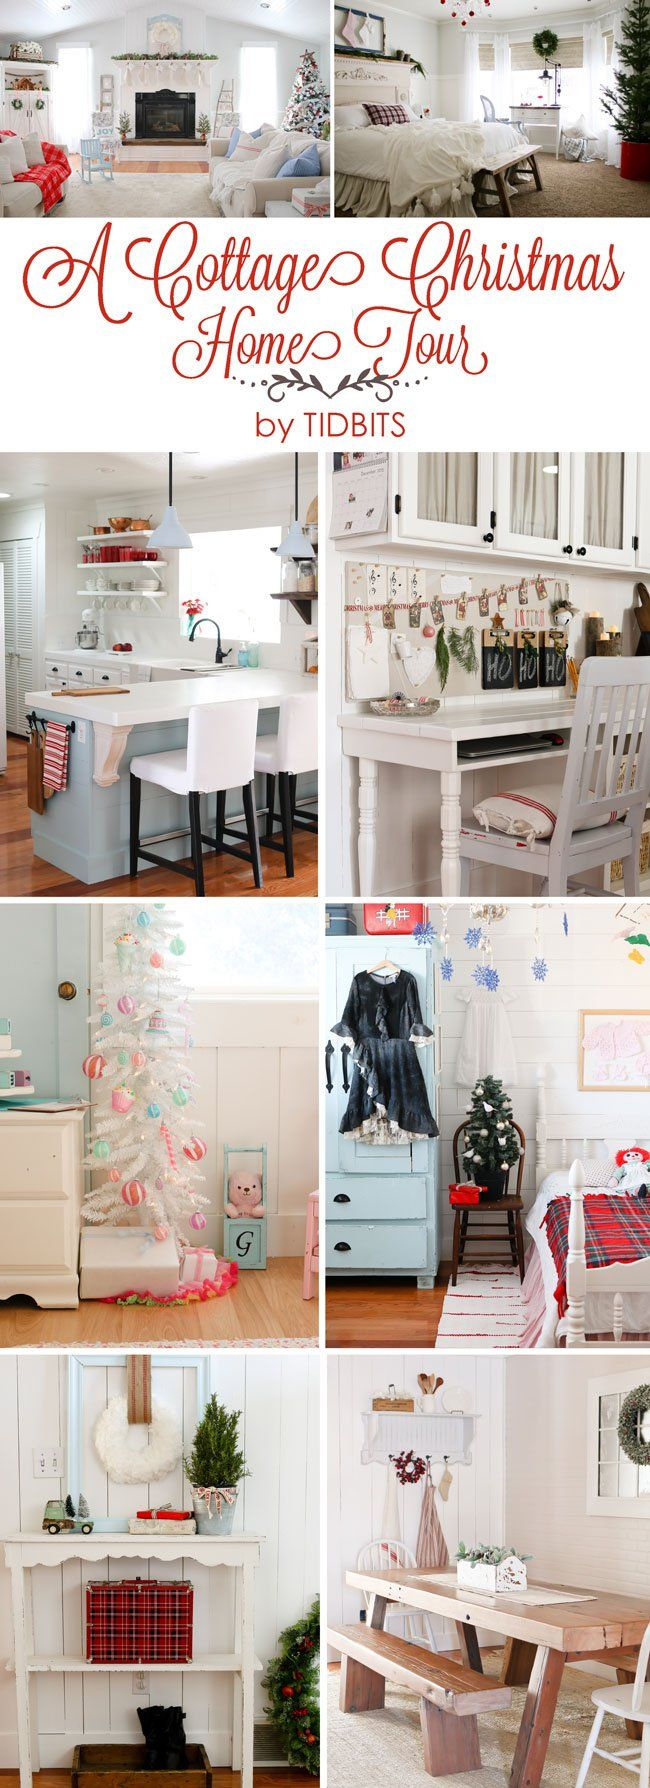 A Cottage Christmas Home Tour - Find inspiration your Christmas decorating on a budget. Home Tour part of Jeniffer Rizzo Holiday Housewalk 2015